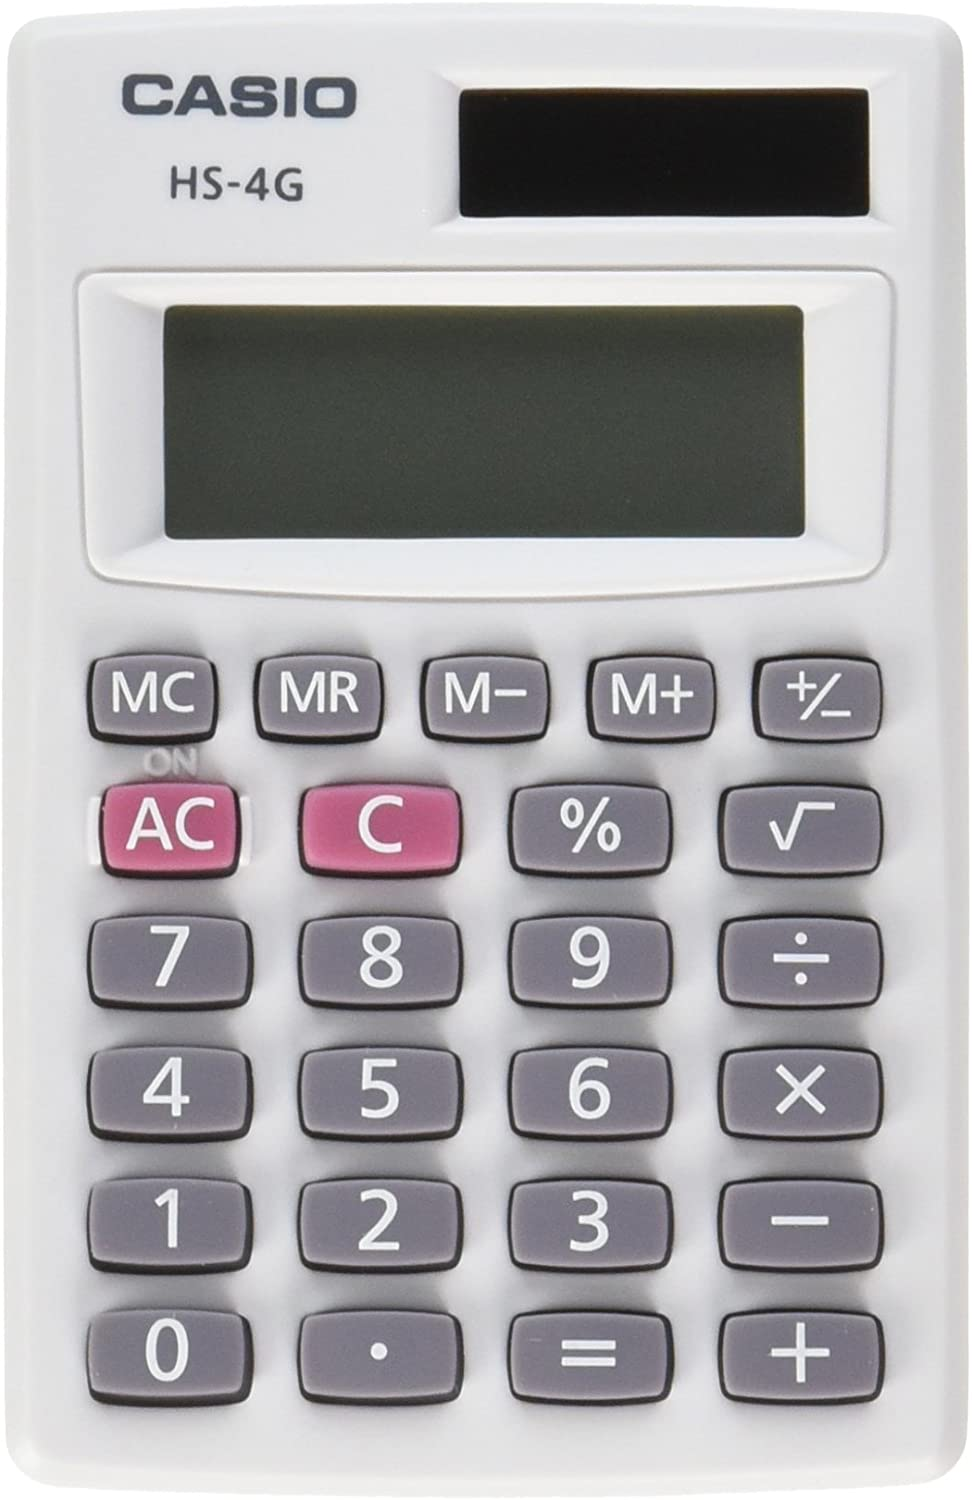 Casio HS-4G National products Handheld Minneapolis Mall Calculator Small Solar